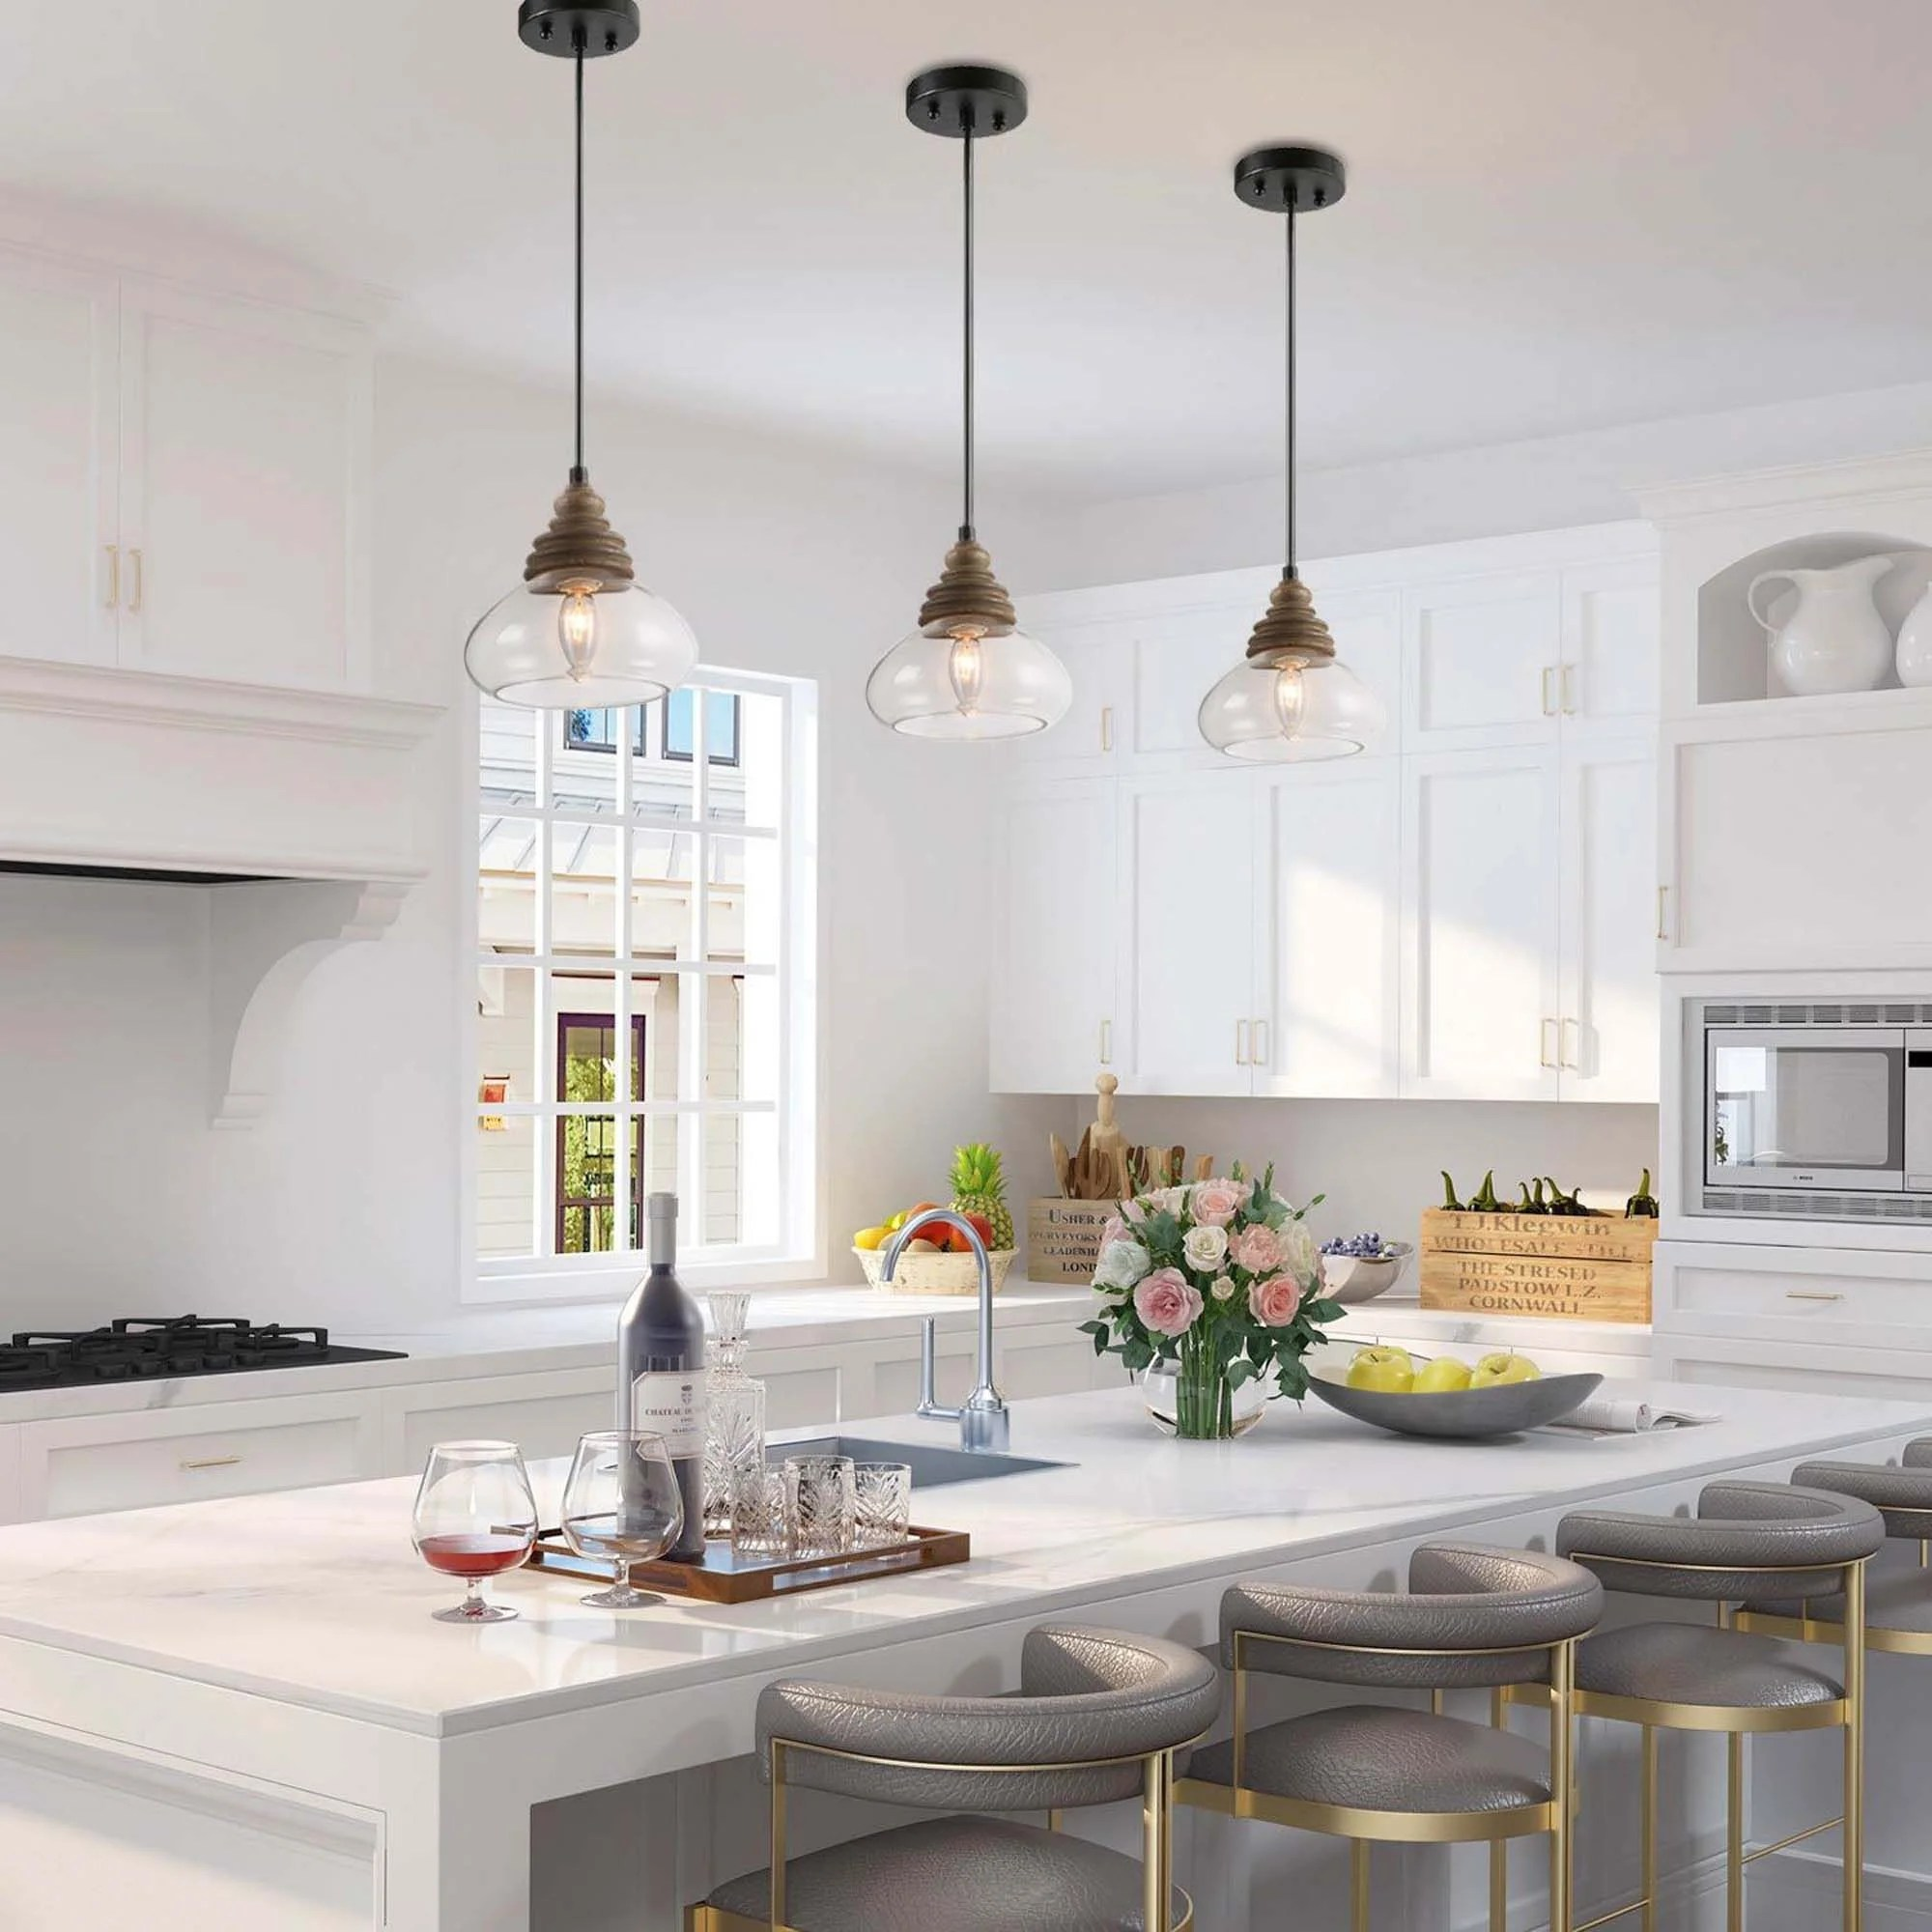 farmhouse 1 light wooden chandelier kitchen island pendant lighting with glass shade w7 5 xh7 5